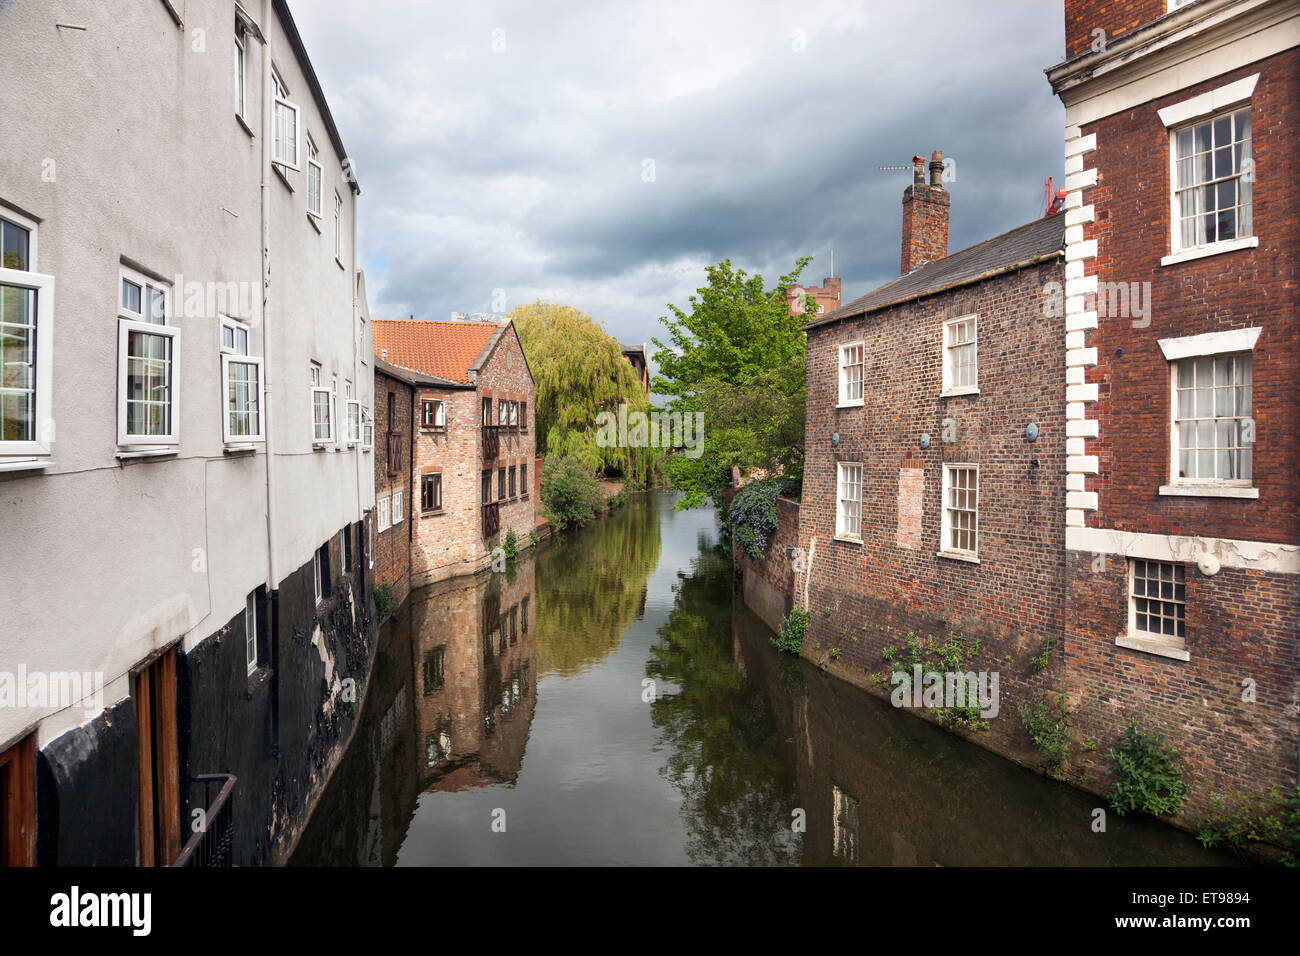 River Foss in York, England - Stock Image